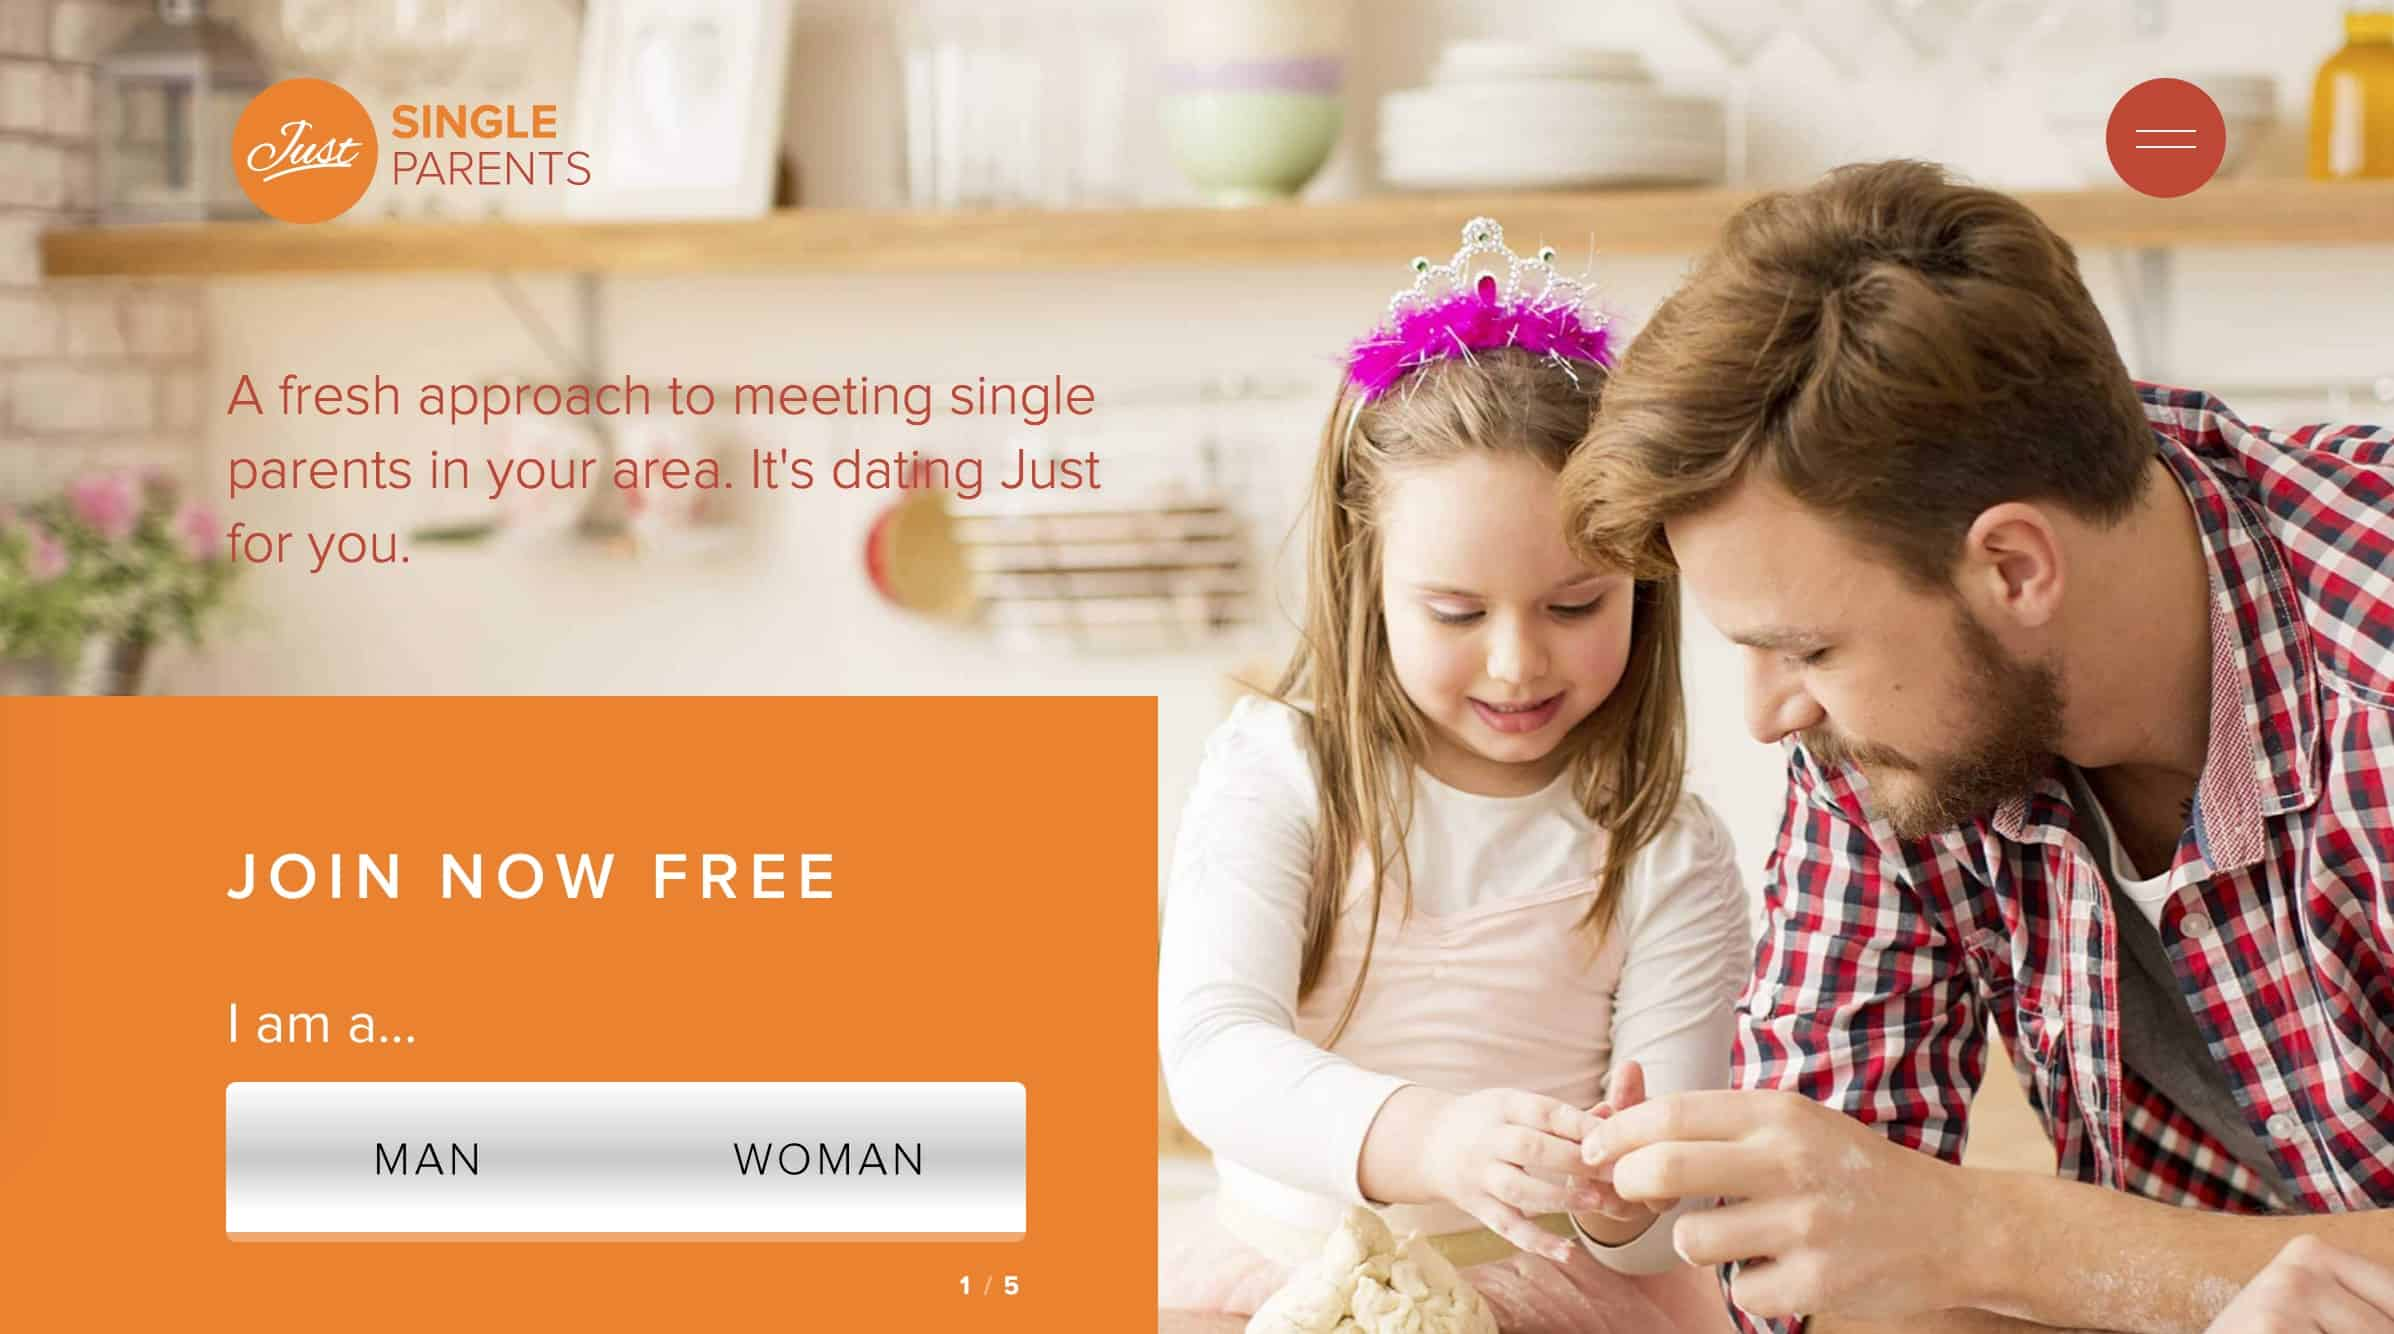 panola single parent dating site Panola county's best 100% free dating site for single parents join our online community of texas single parents and meet people like you through our free panola county single parent personal ads and online chat rooms.